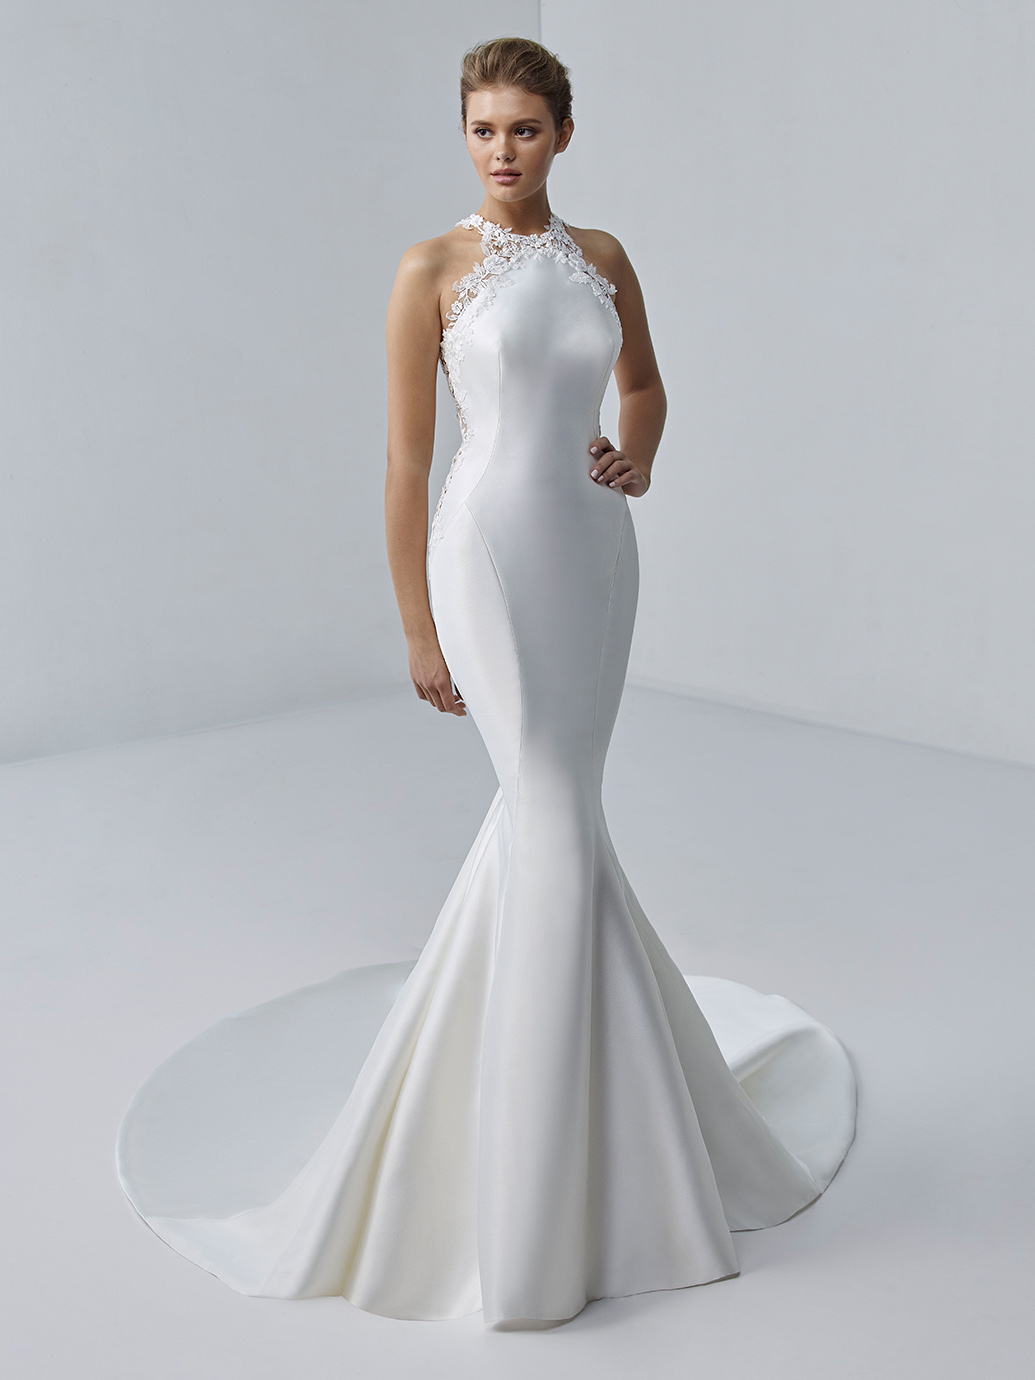 étoile-by-enzoani-2021-Dress-Finder-Camille